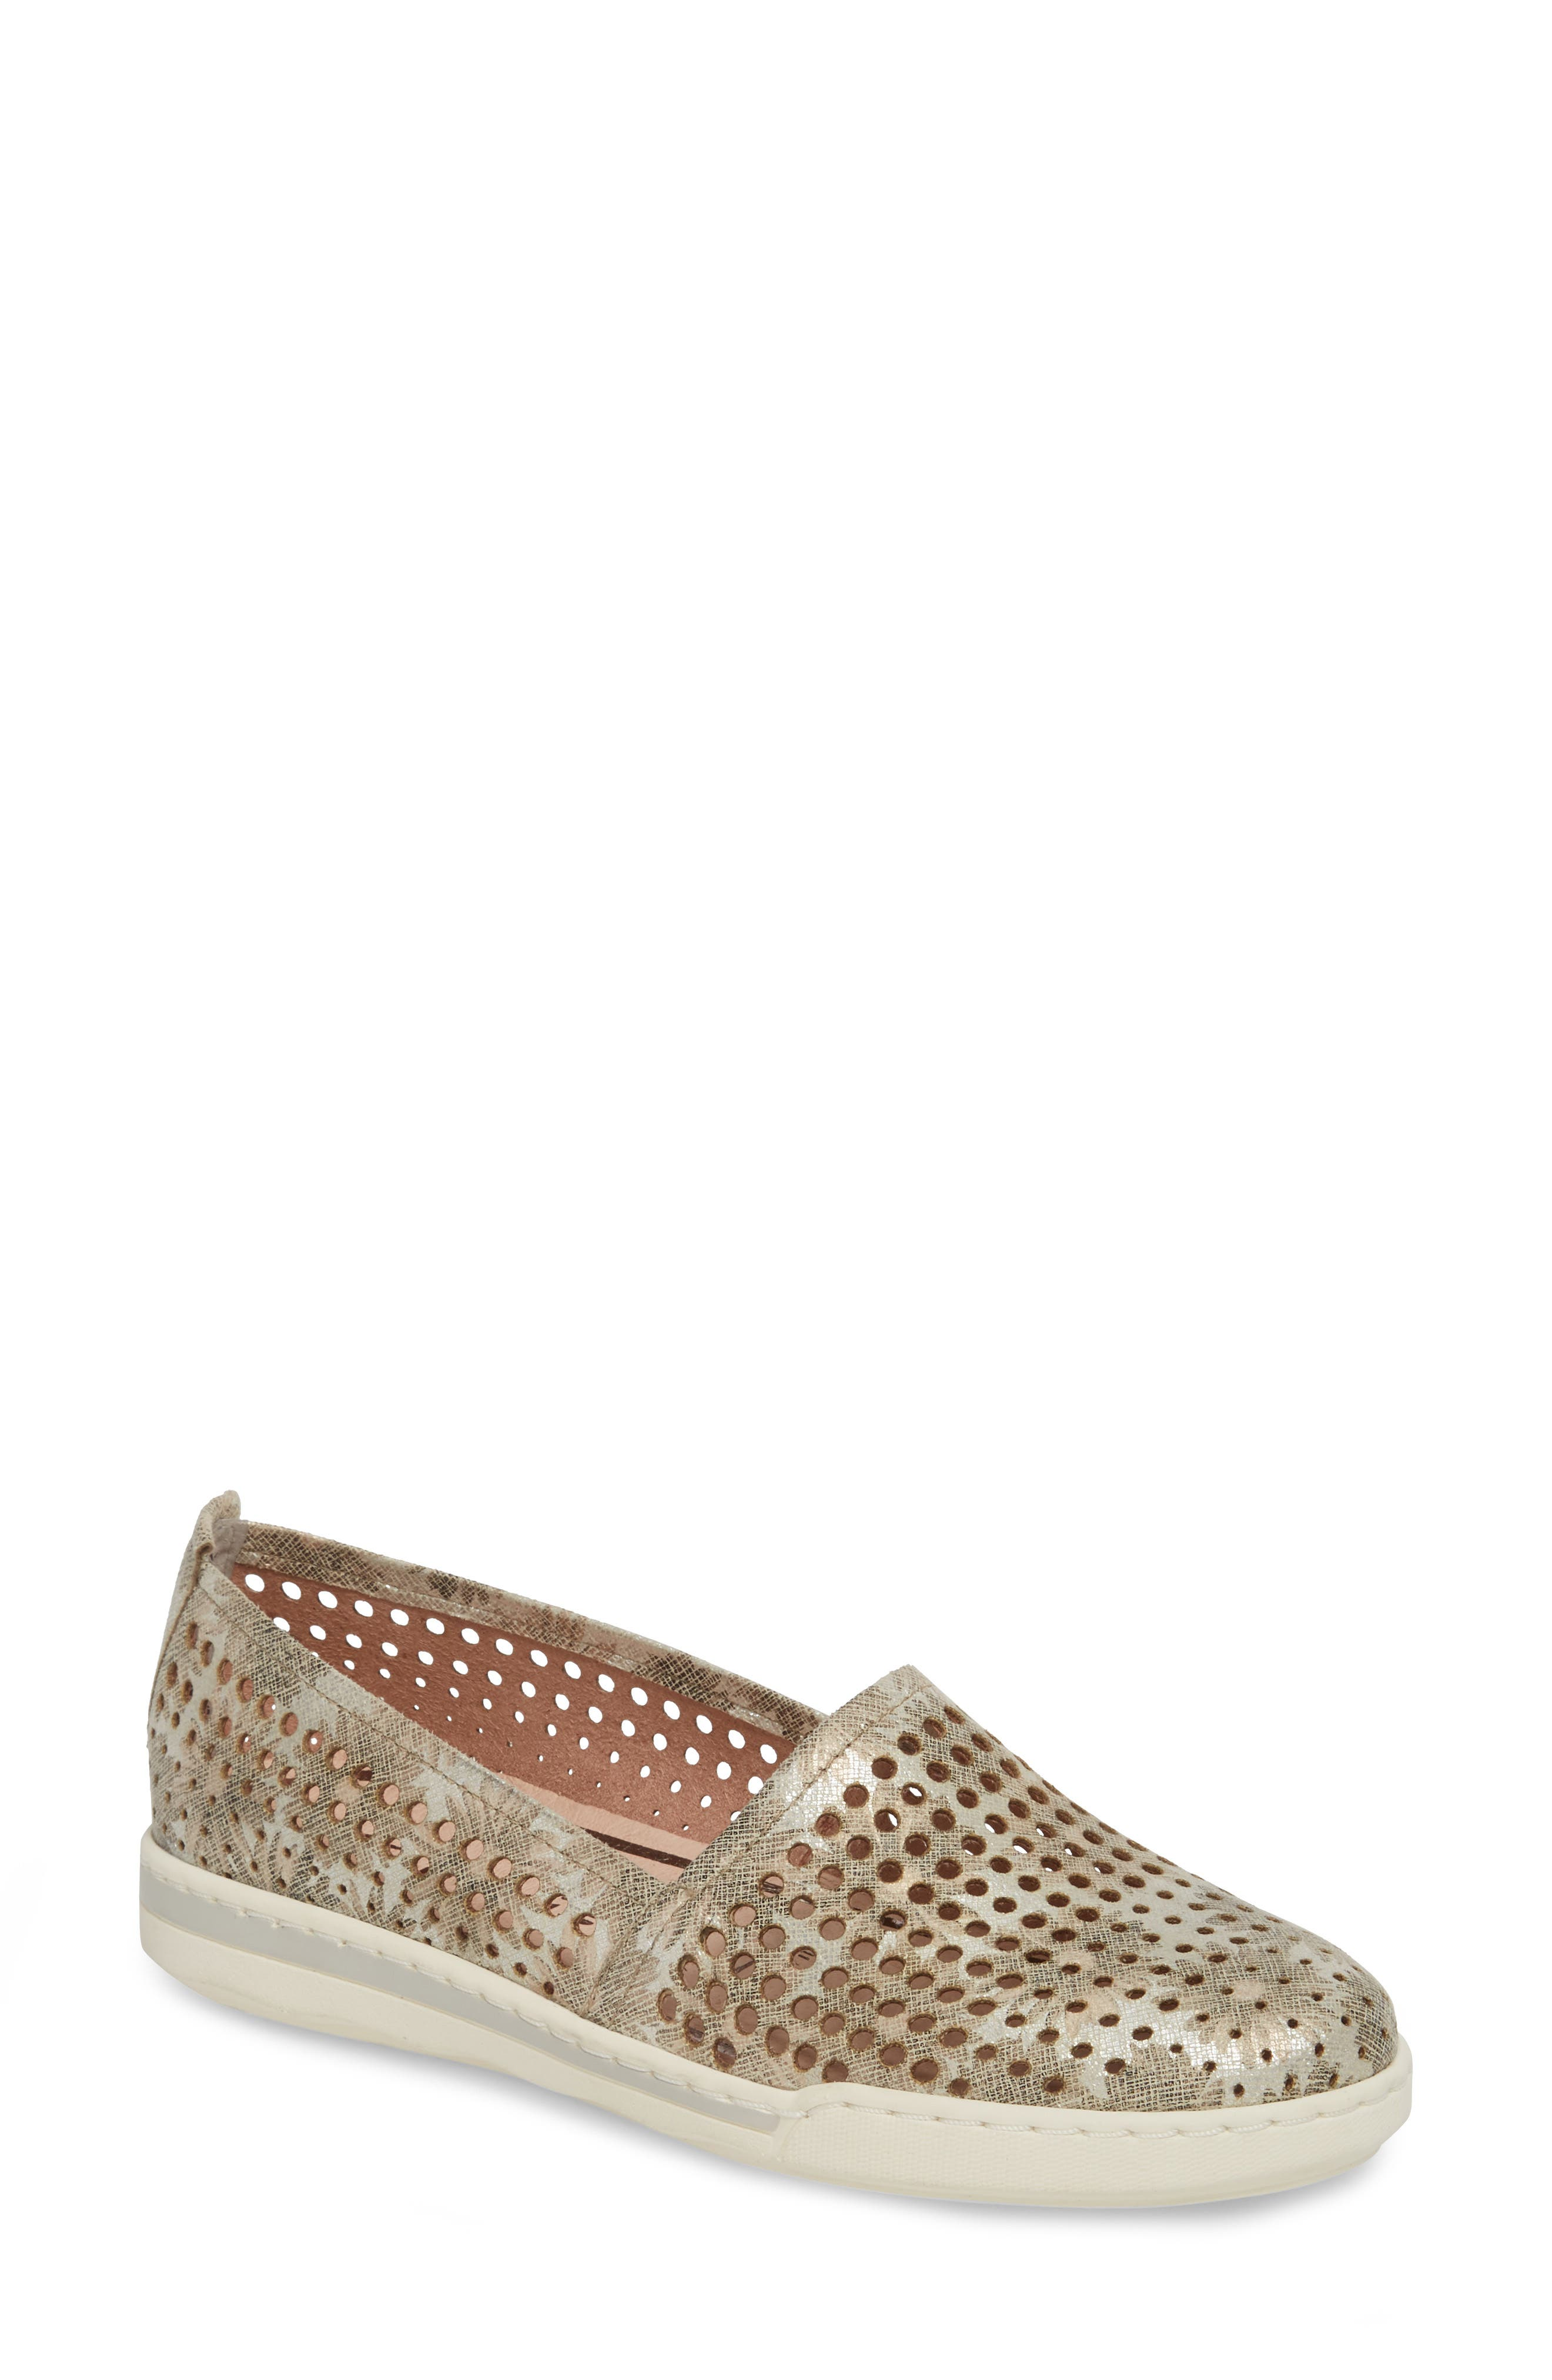 Freya Slip-On Sneaker,                             Main thumbnail 1, color,                             TAUPE FABRIC